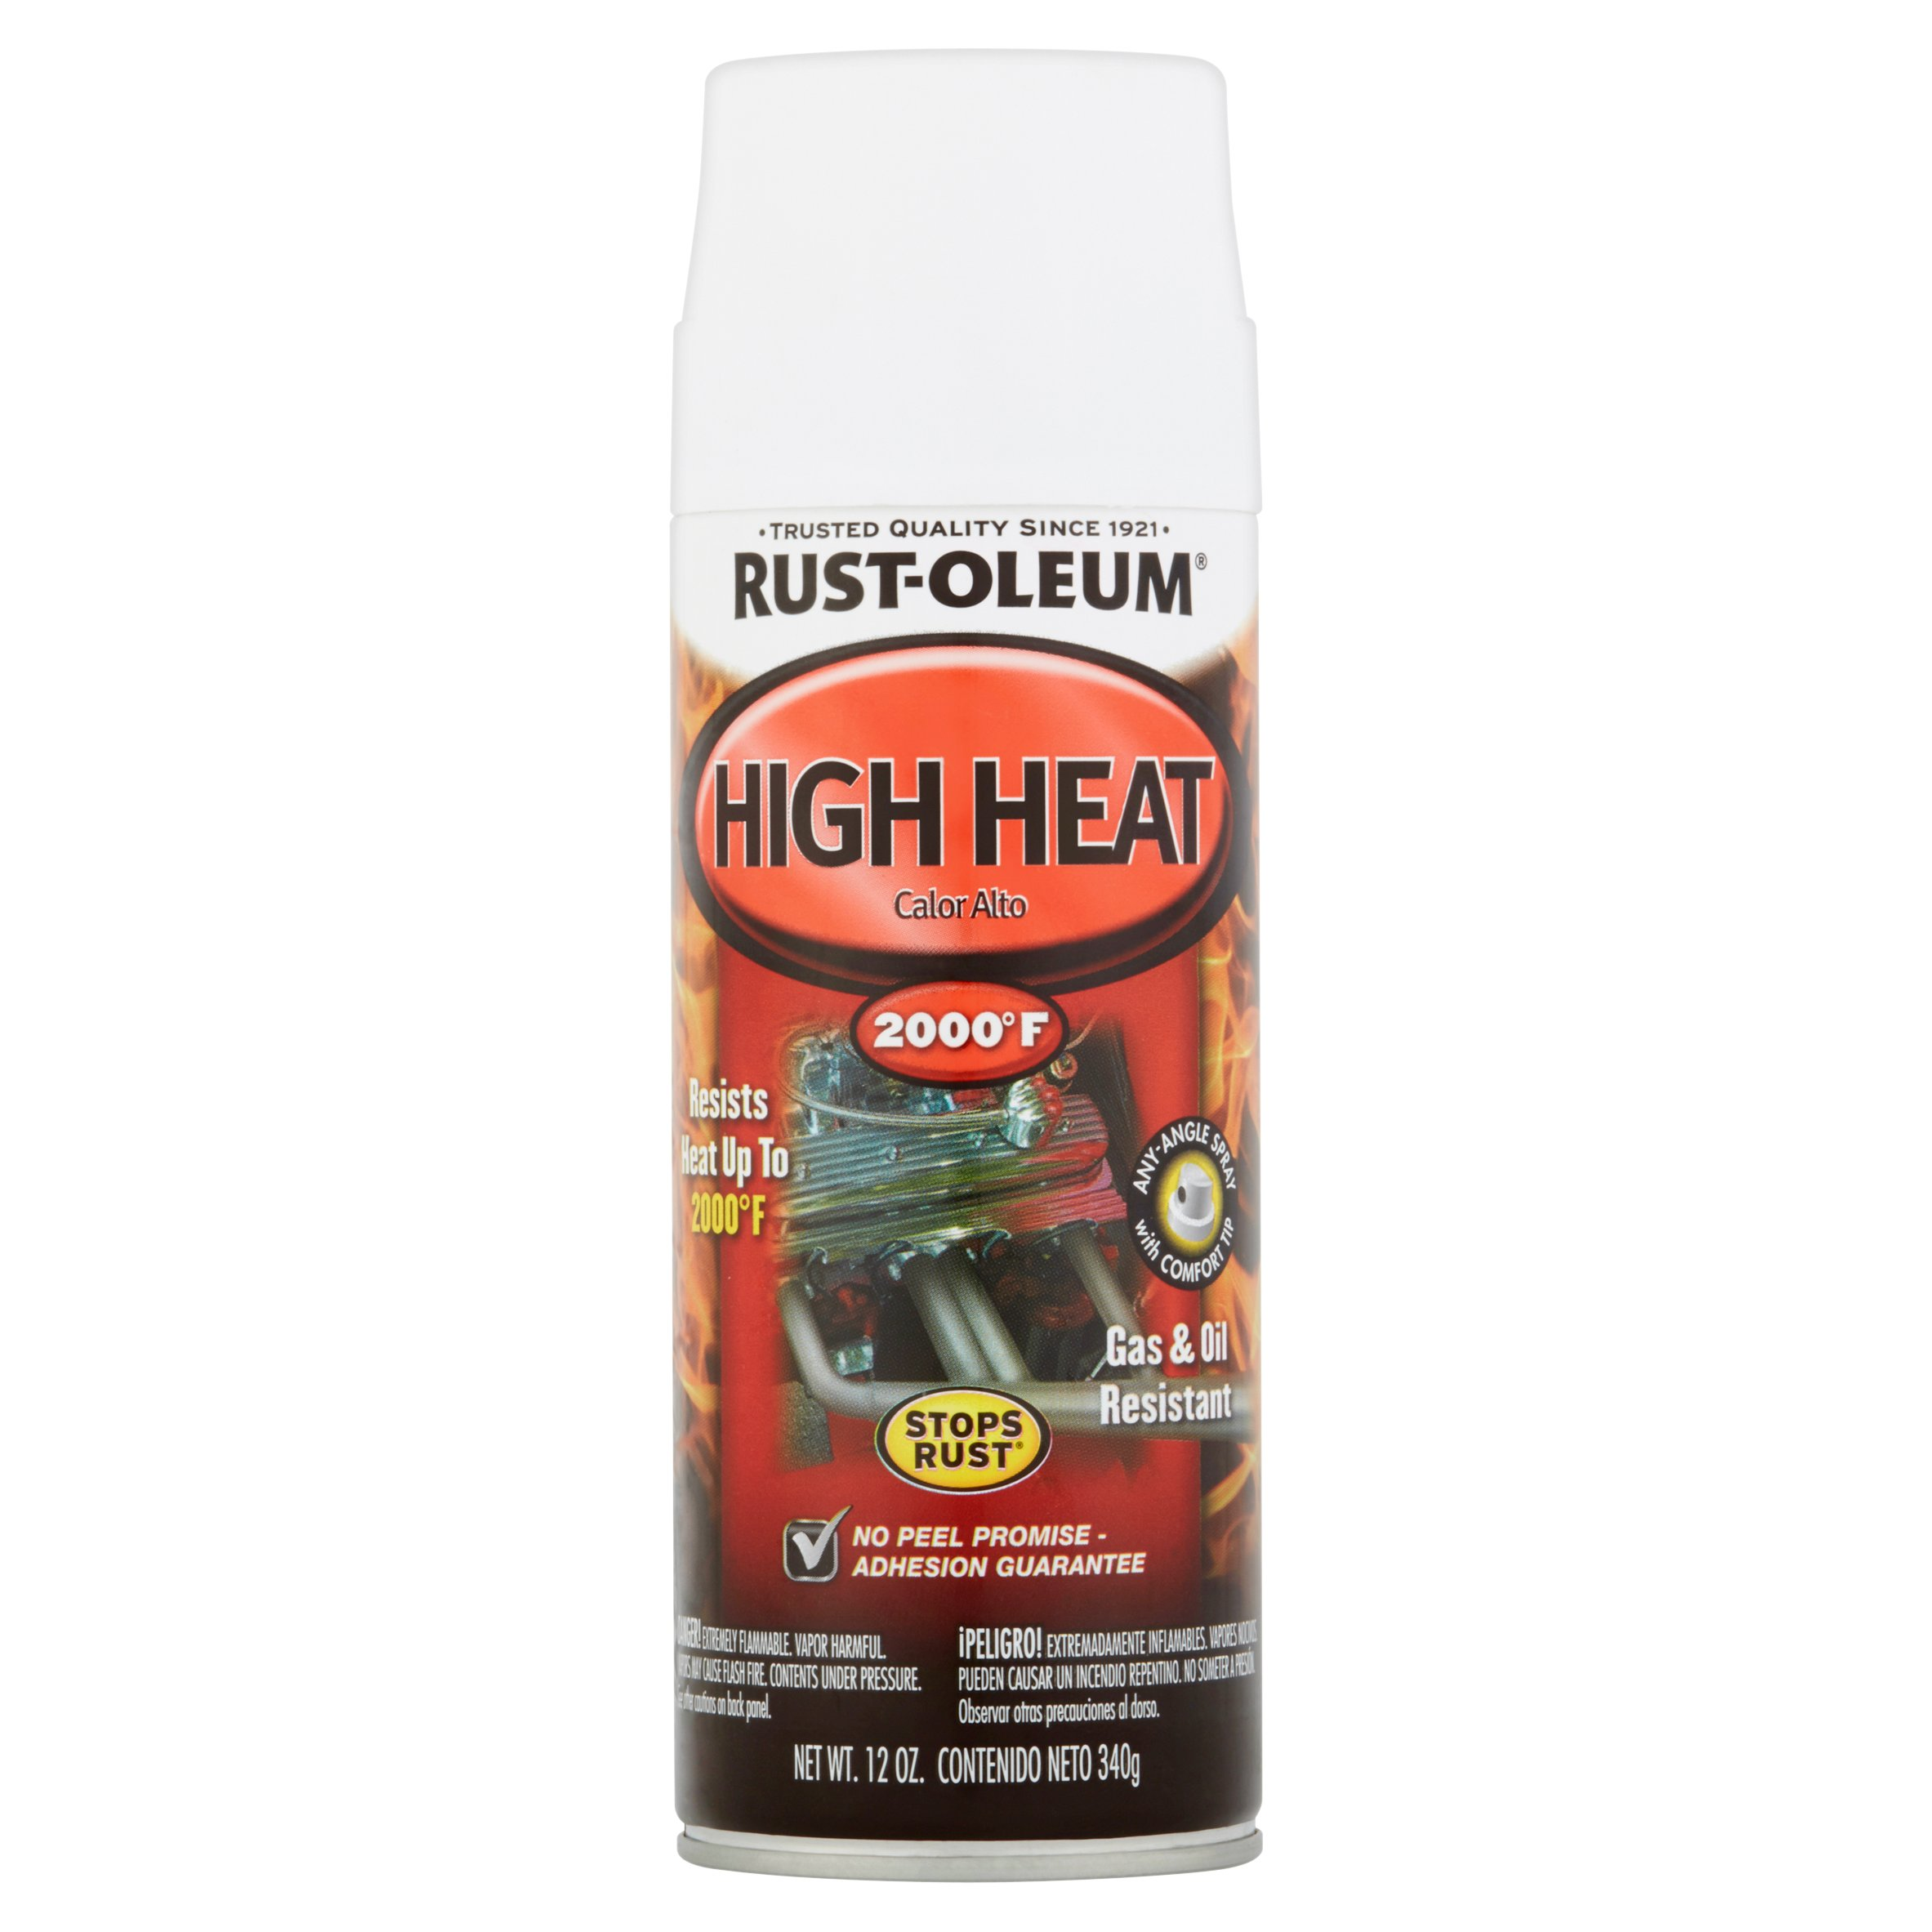 Rust-Oleum High Heat Aluminum Paint